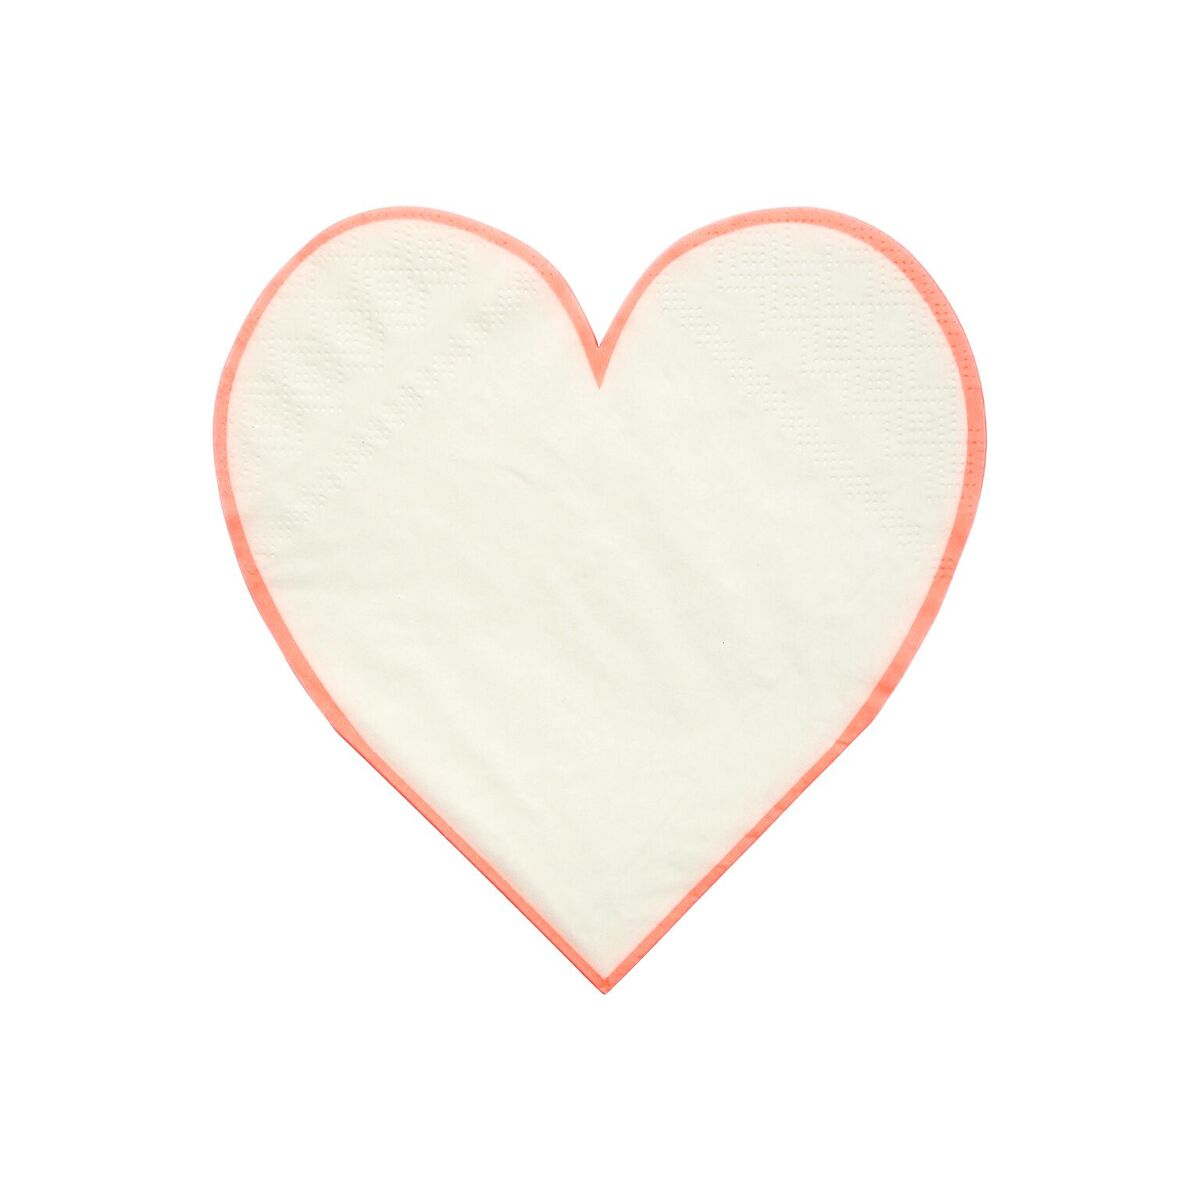 Coral Heart Serviette